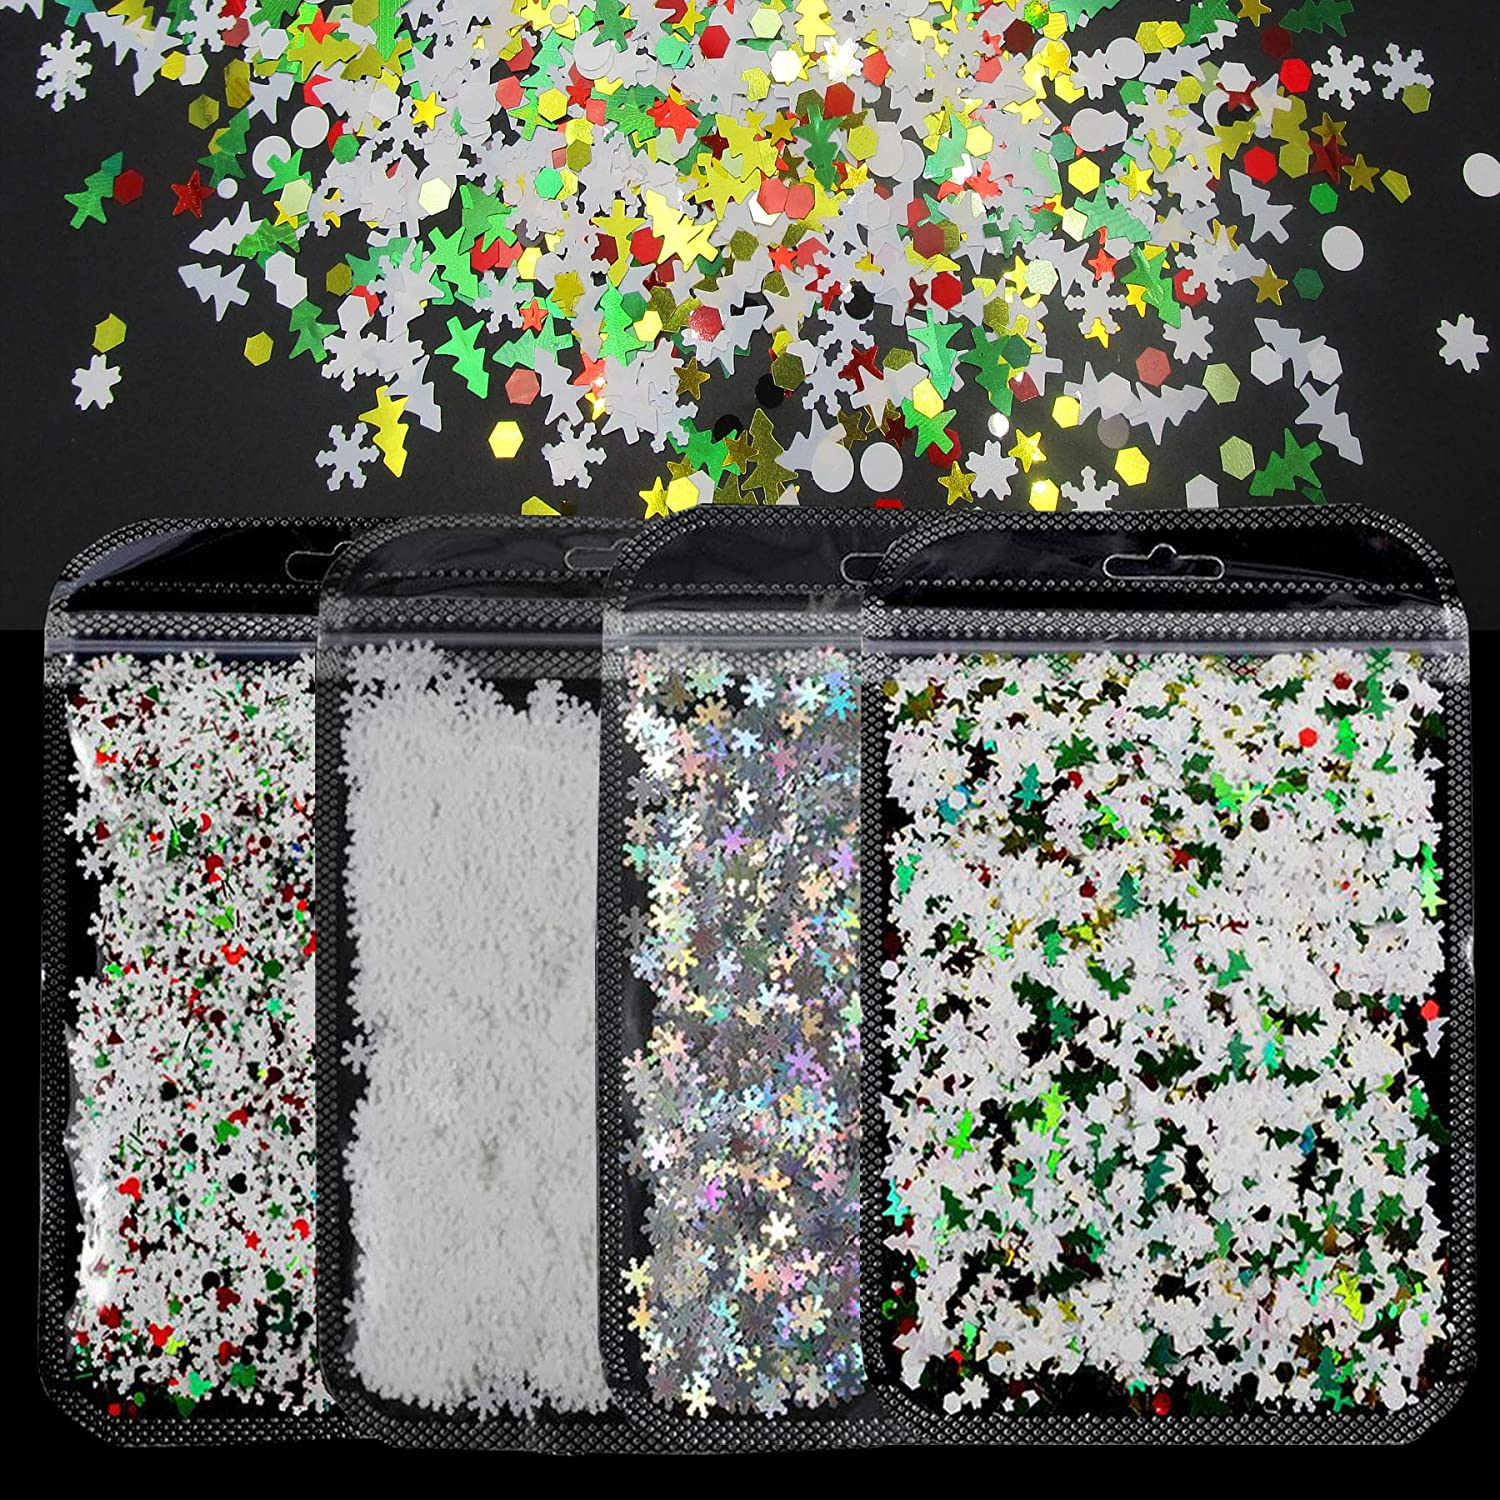 40g Christmas Snowflake Chunky Glitter Flakes Holographic Silver White Snow Glitter Sequins Confetti Acrylic Nail Art Tips Accessories Resin Epoxy Crafts Slime Festival Decor